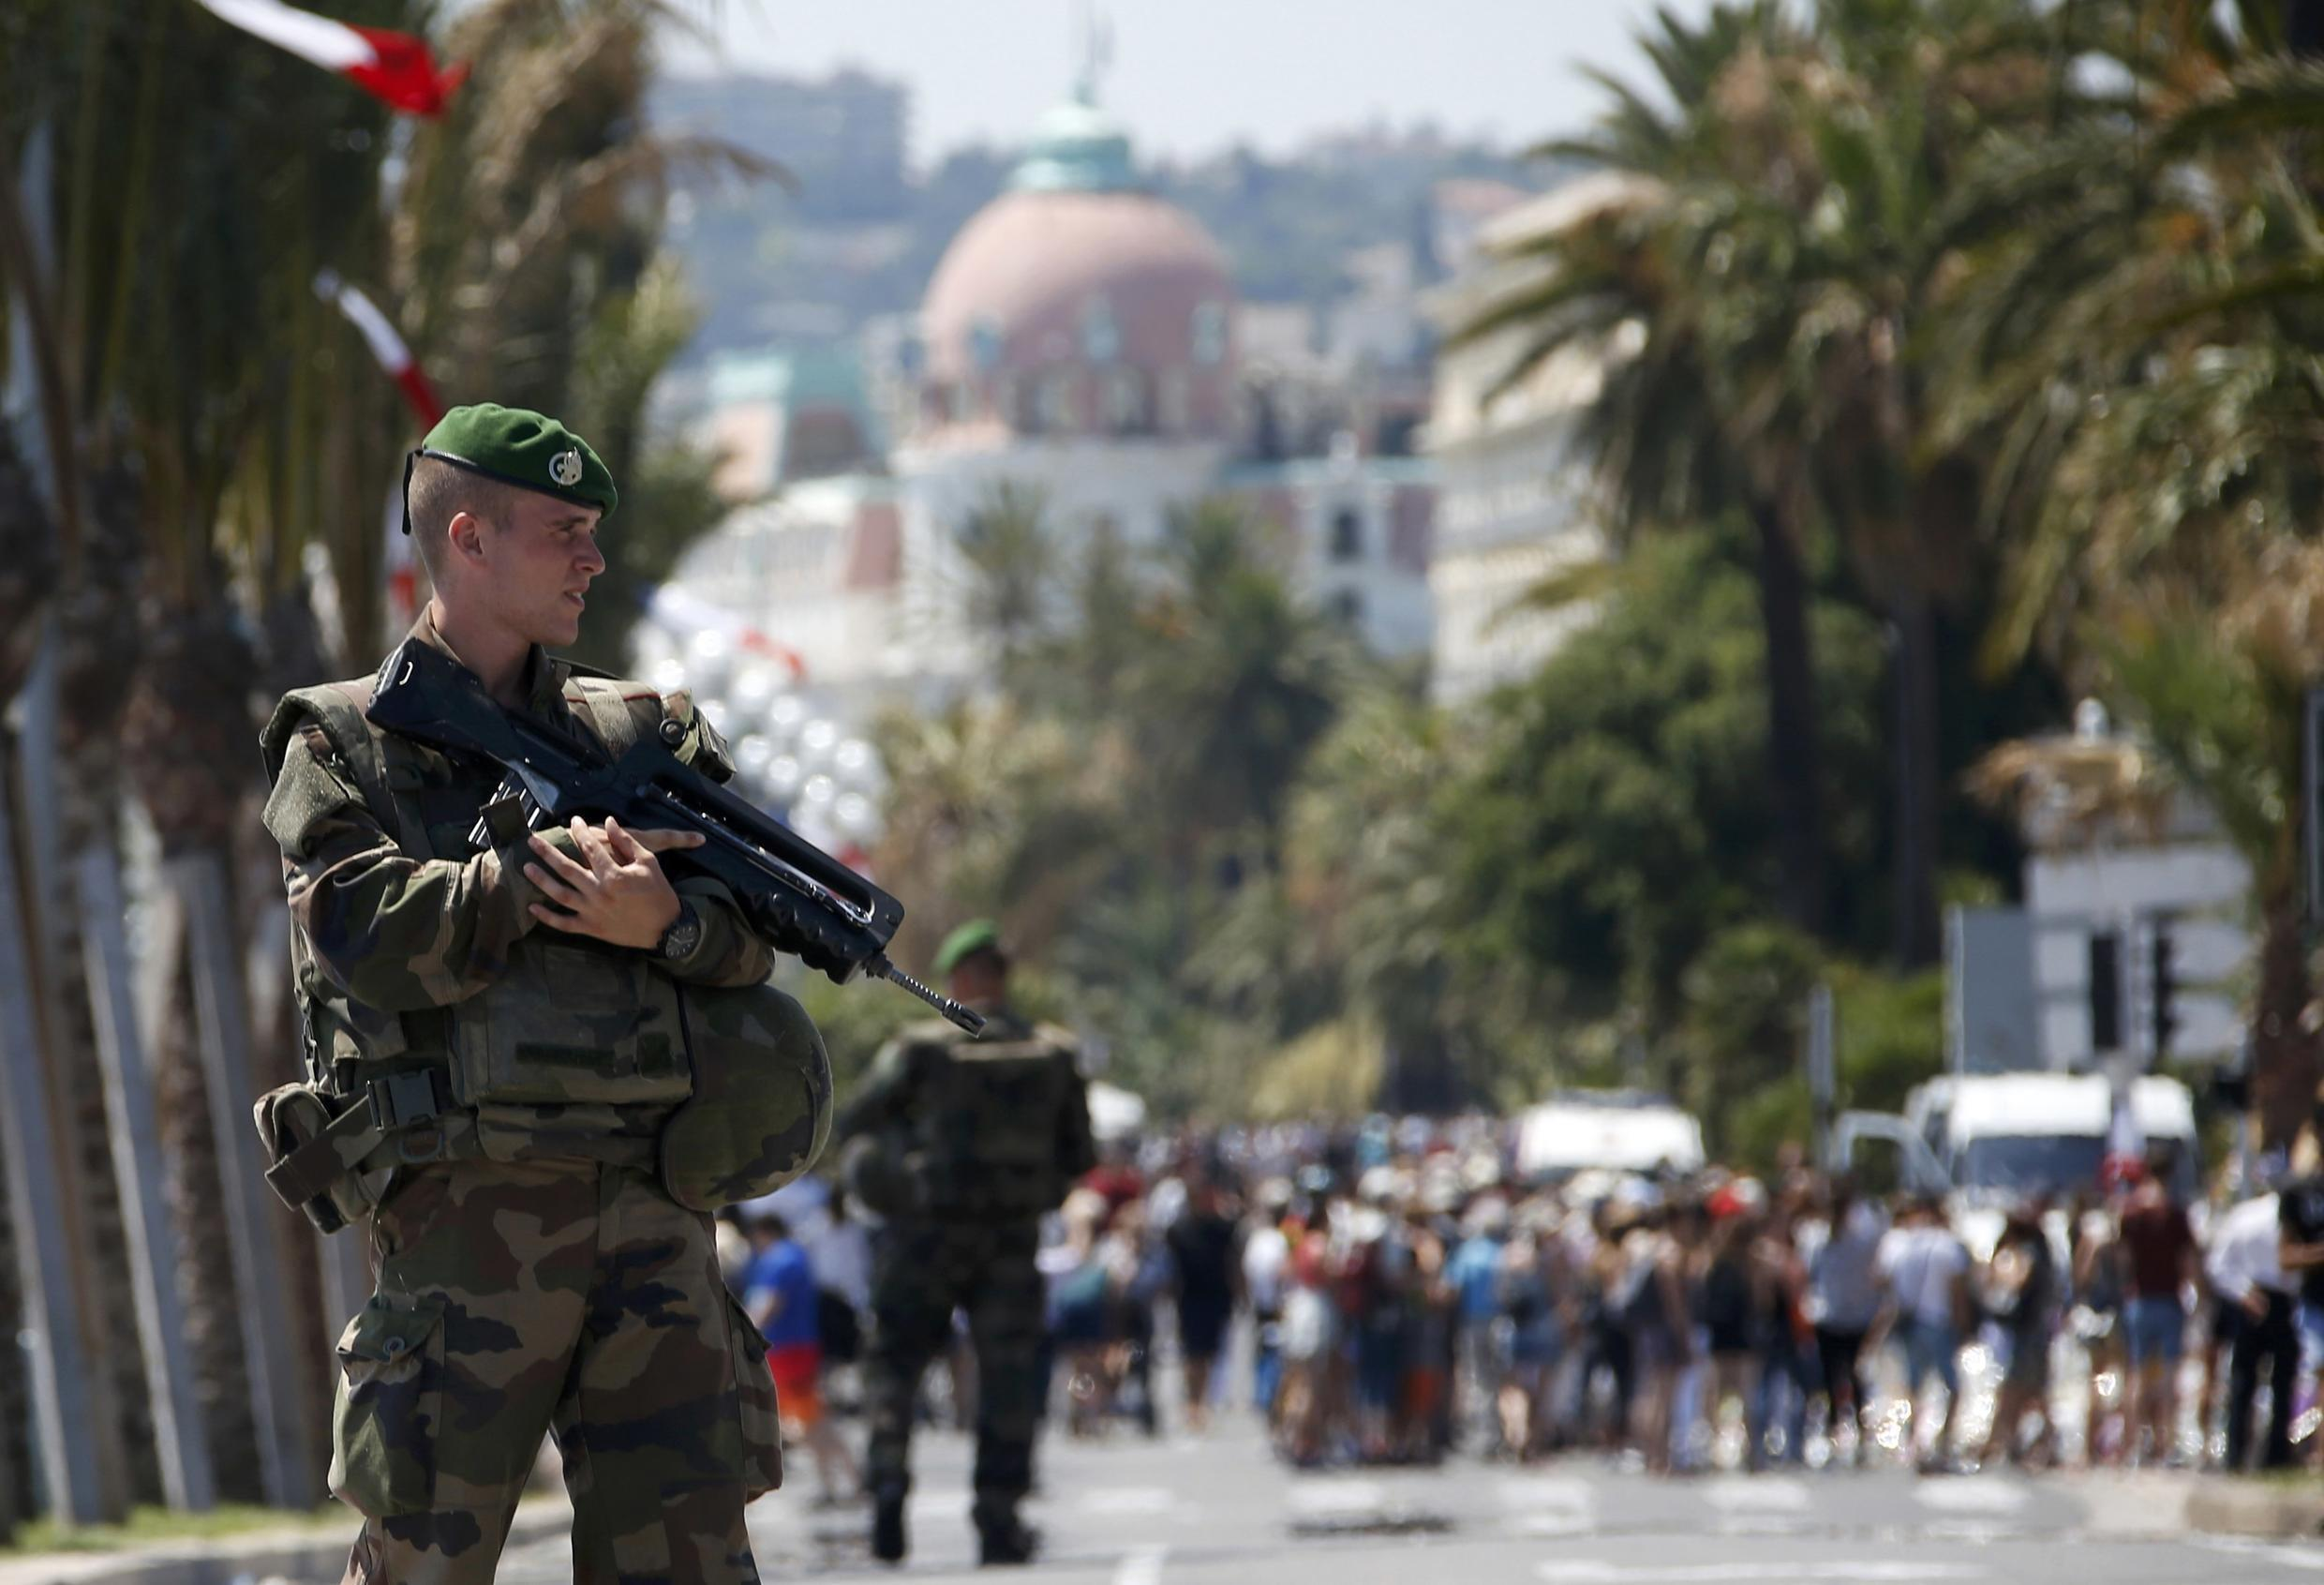 Soldiers from the French Foreign Legion patrol on the Promenade des Anglais in Nice after the attacks